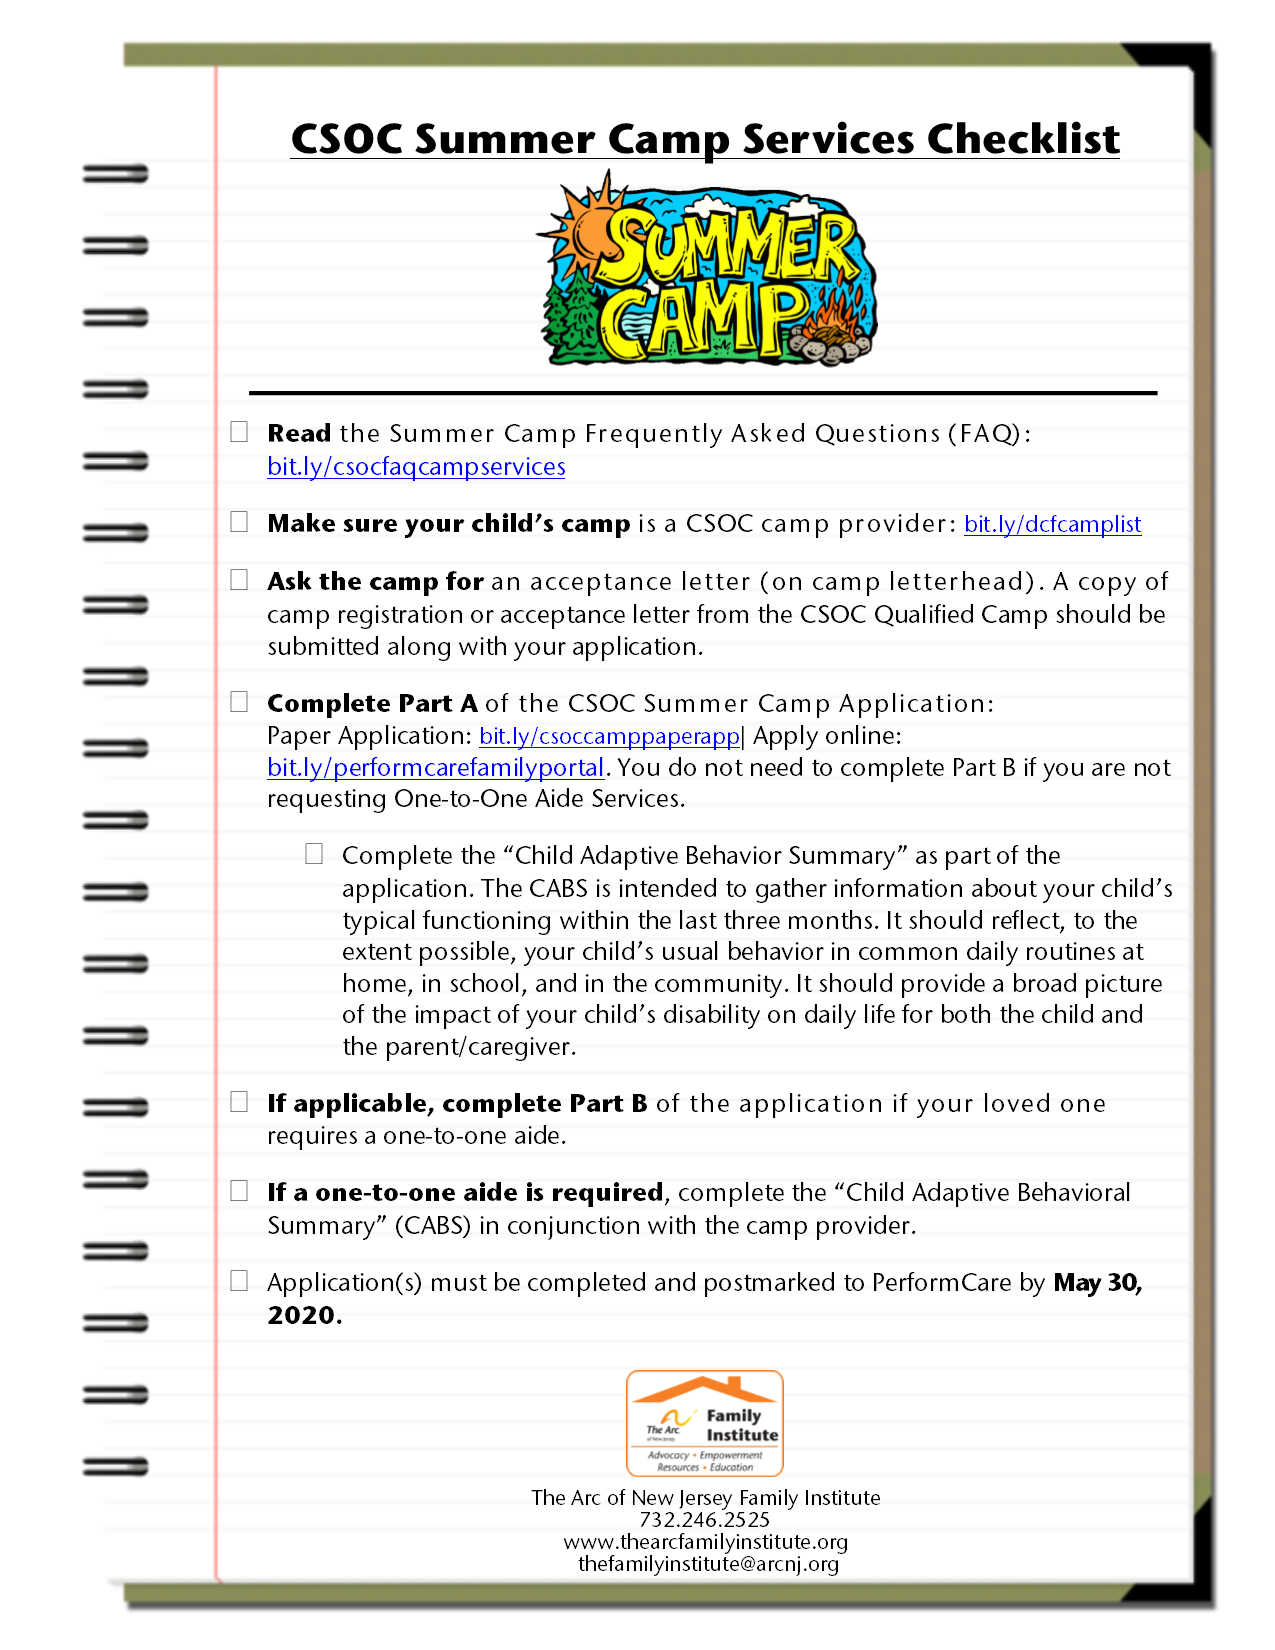 CSOC Summer Camp Services Checklist